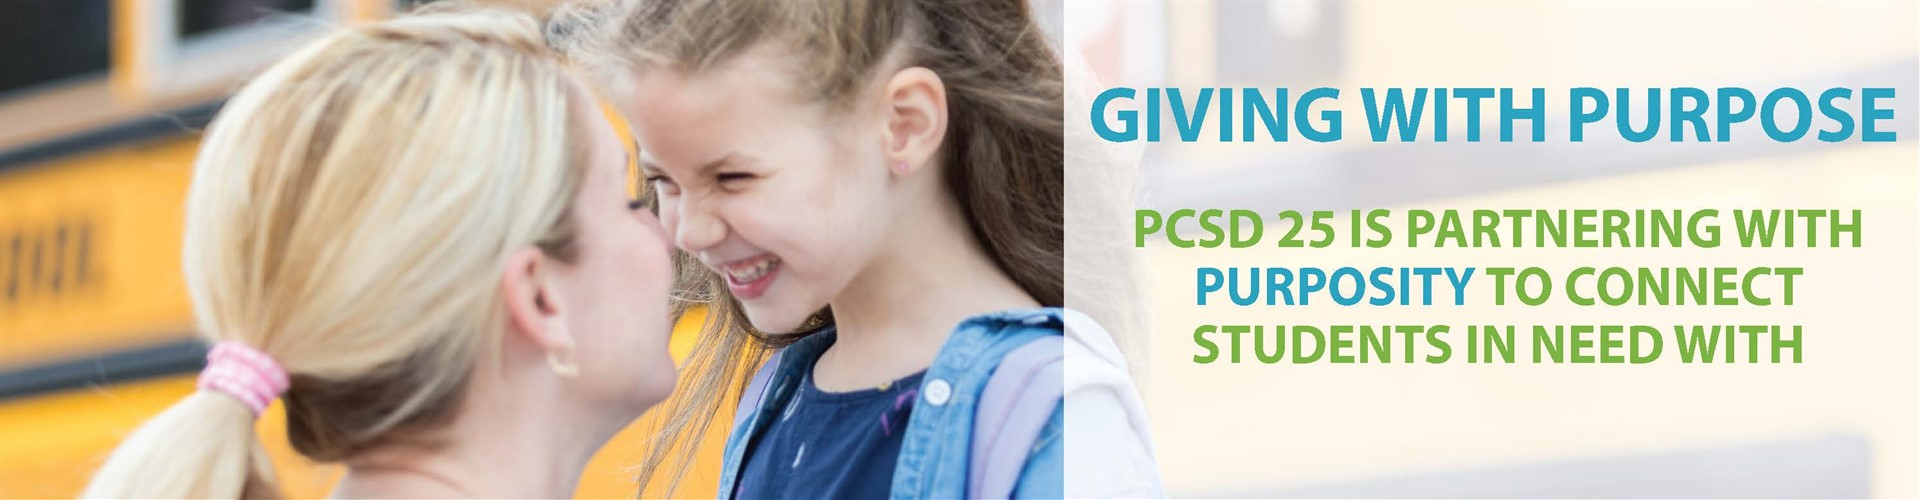 PCSD 25 is partnering with Purposity to connect students in need with people who want to give.